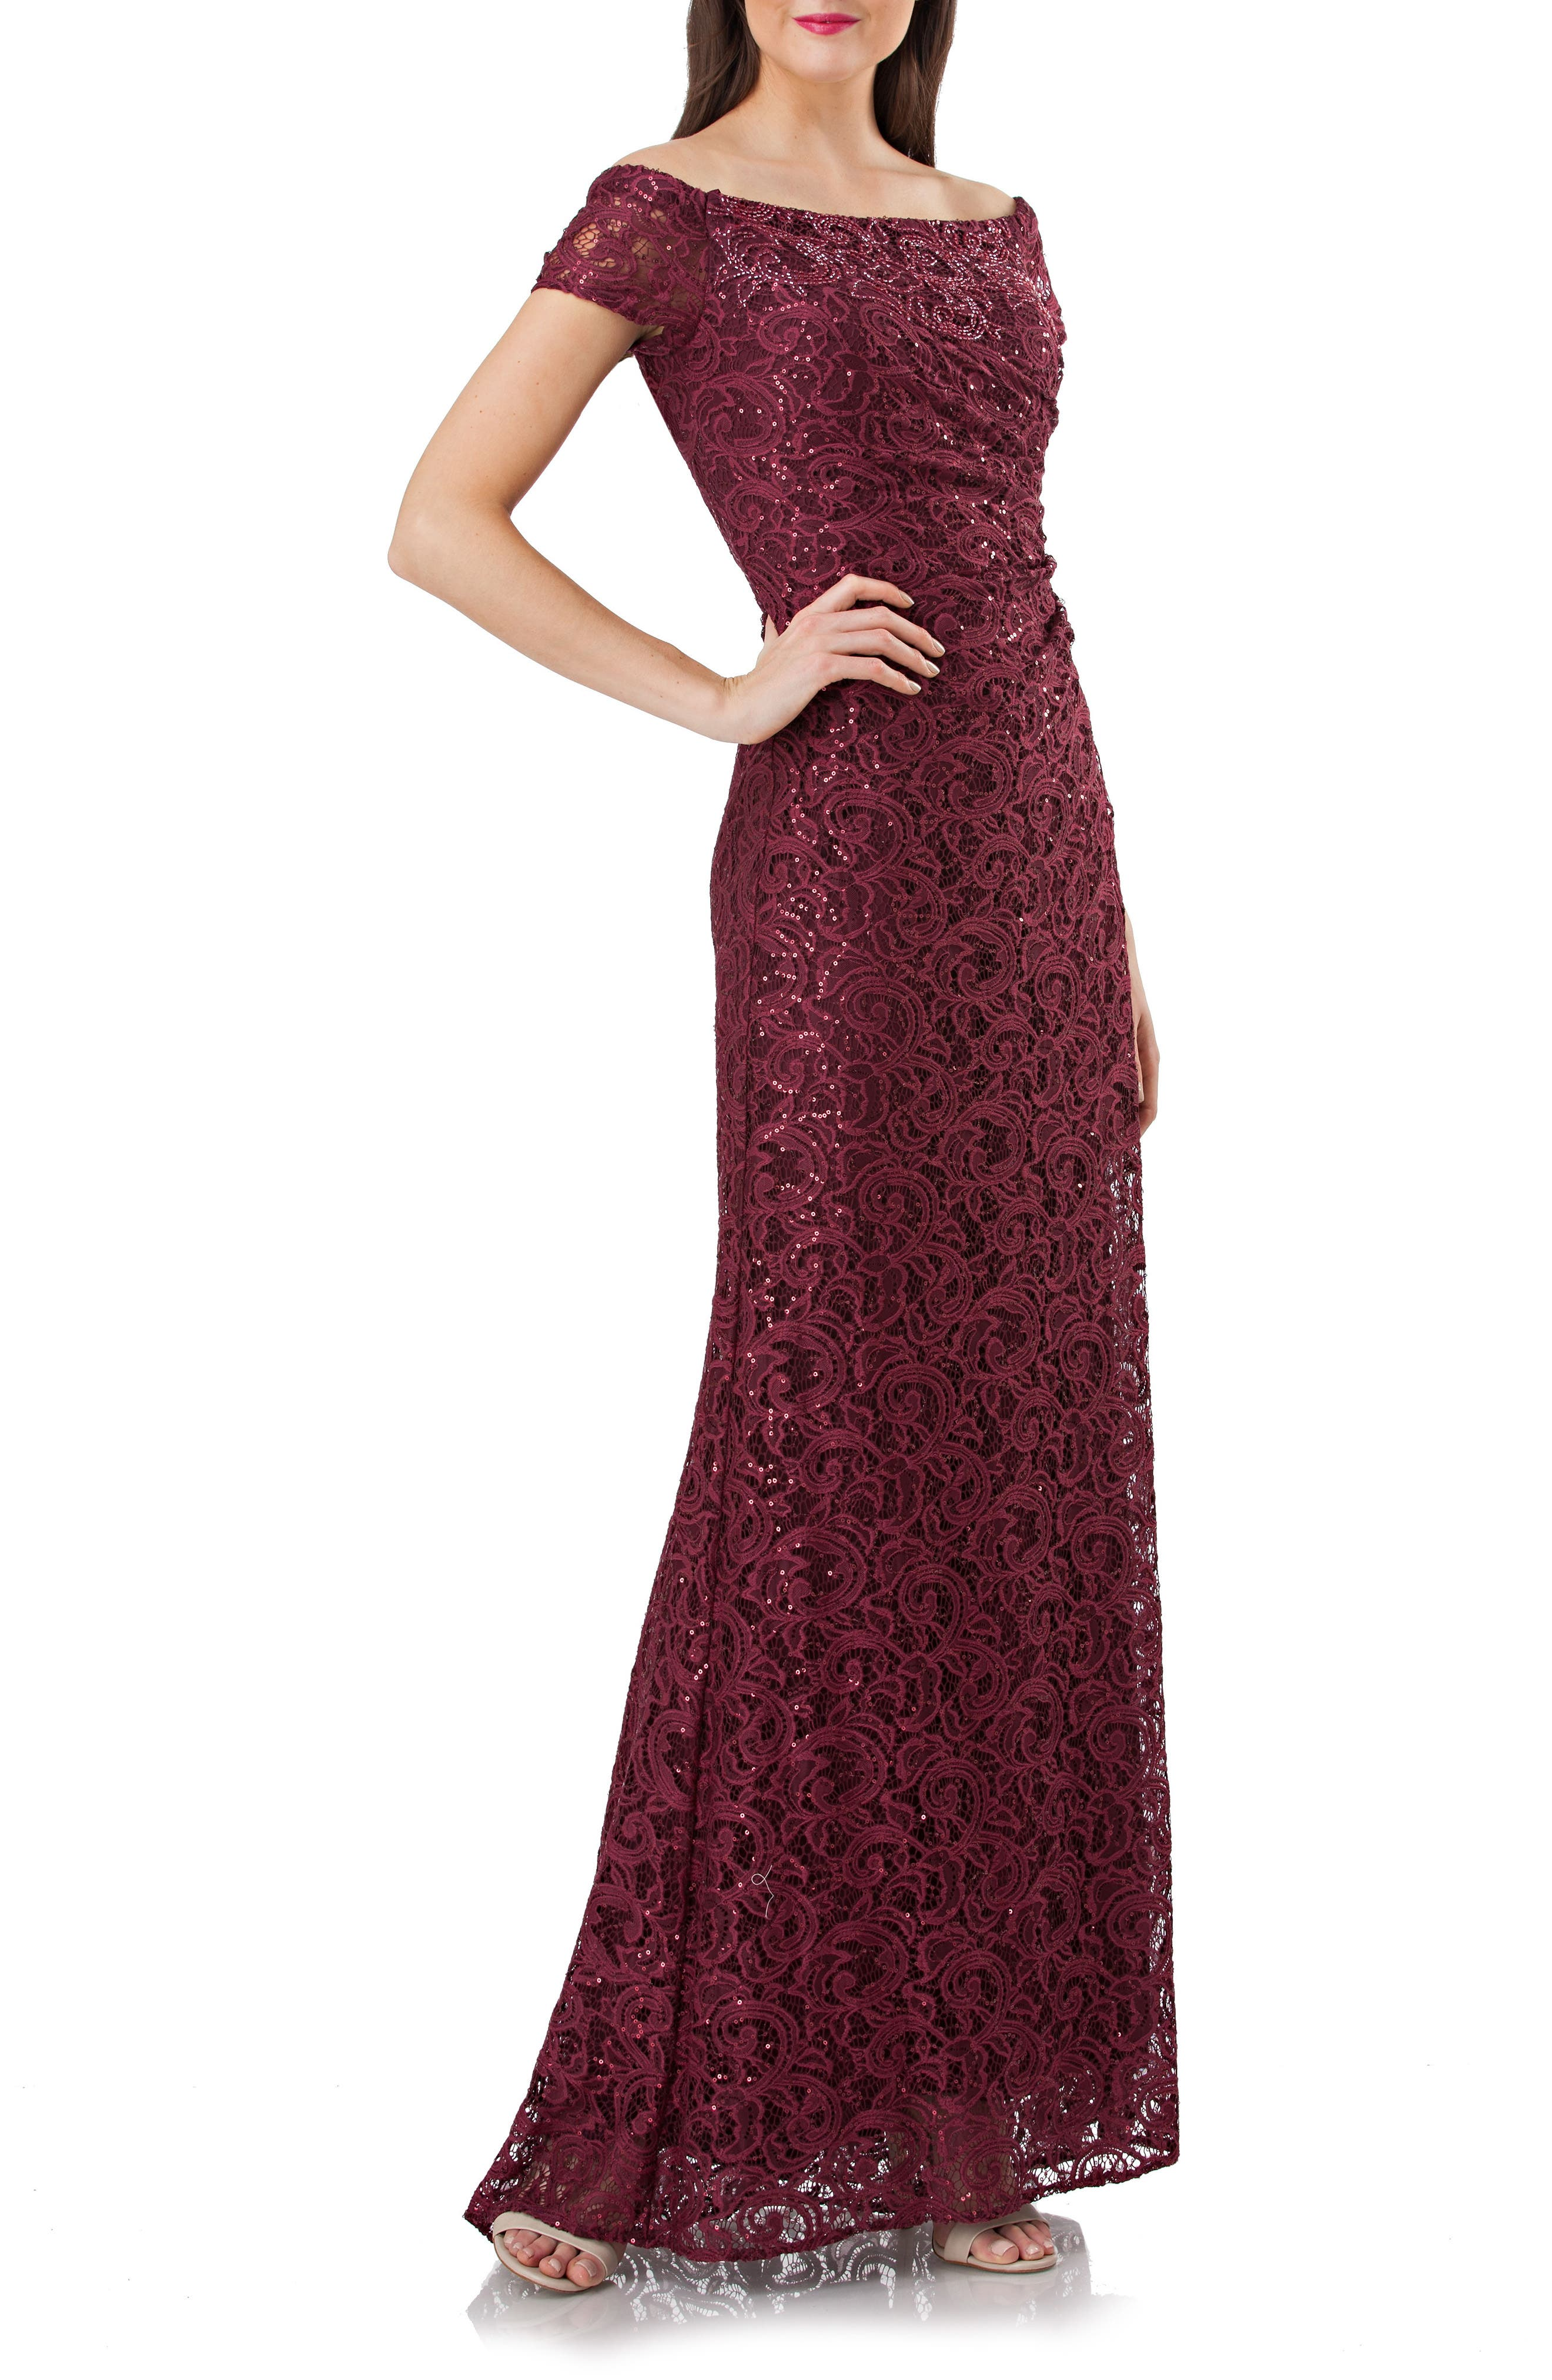 Main Image - Carmen Marc Valvo Infusion Sequin Lace Off the Shoulder Mermaid Gown